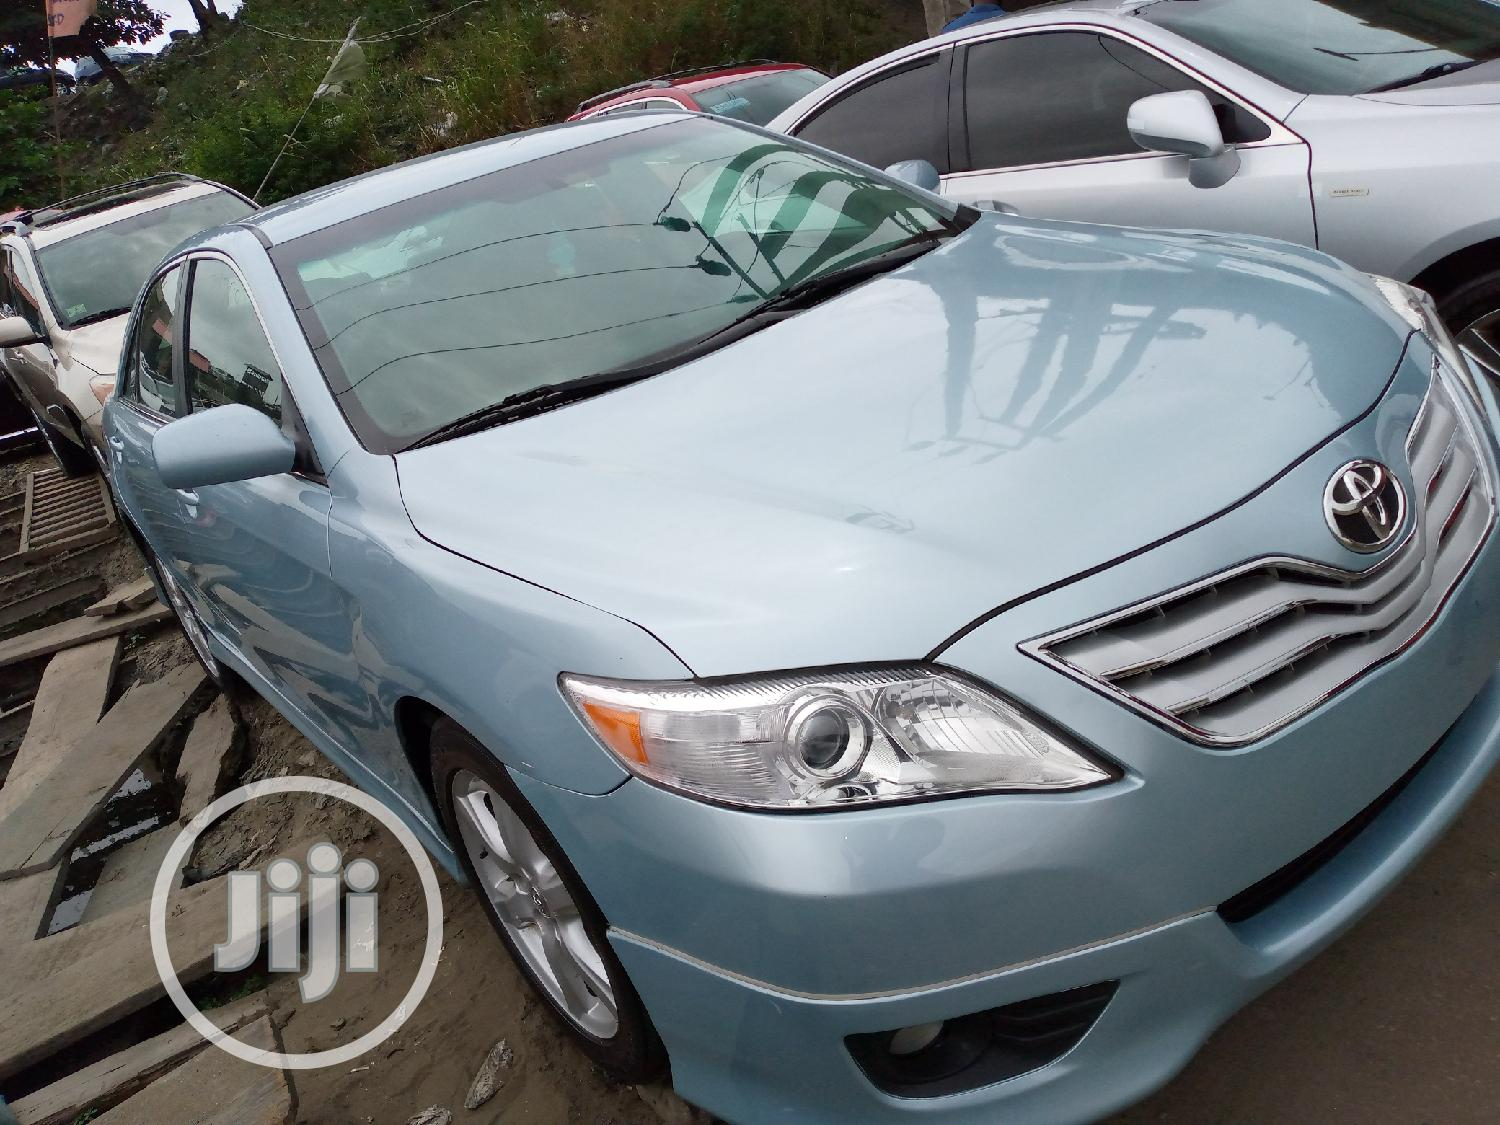 Toyota Camry 2008 2.4 SE Automatic Blue | Cars for sale in Apapa, Lagos State, Nigeria